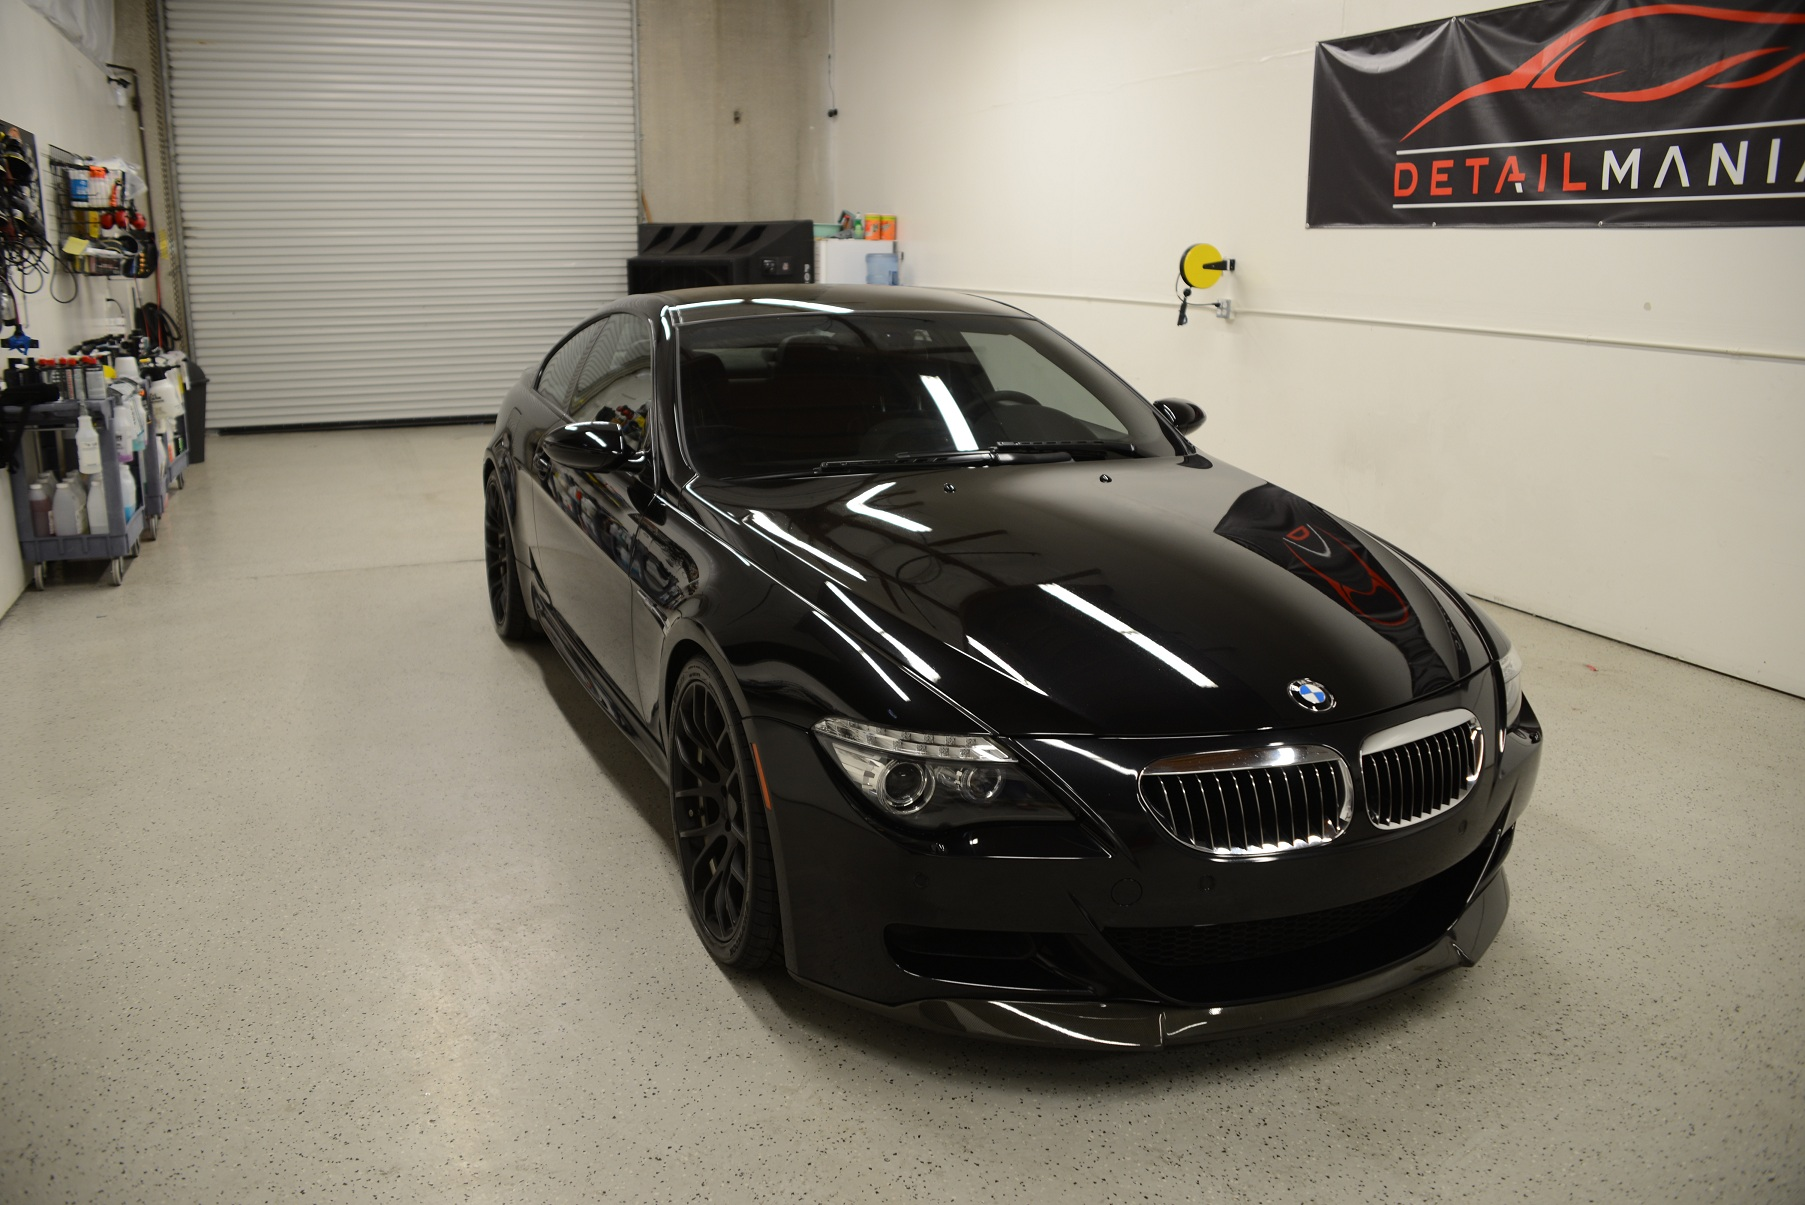 BMW M5 with clean glass top coating.